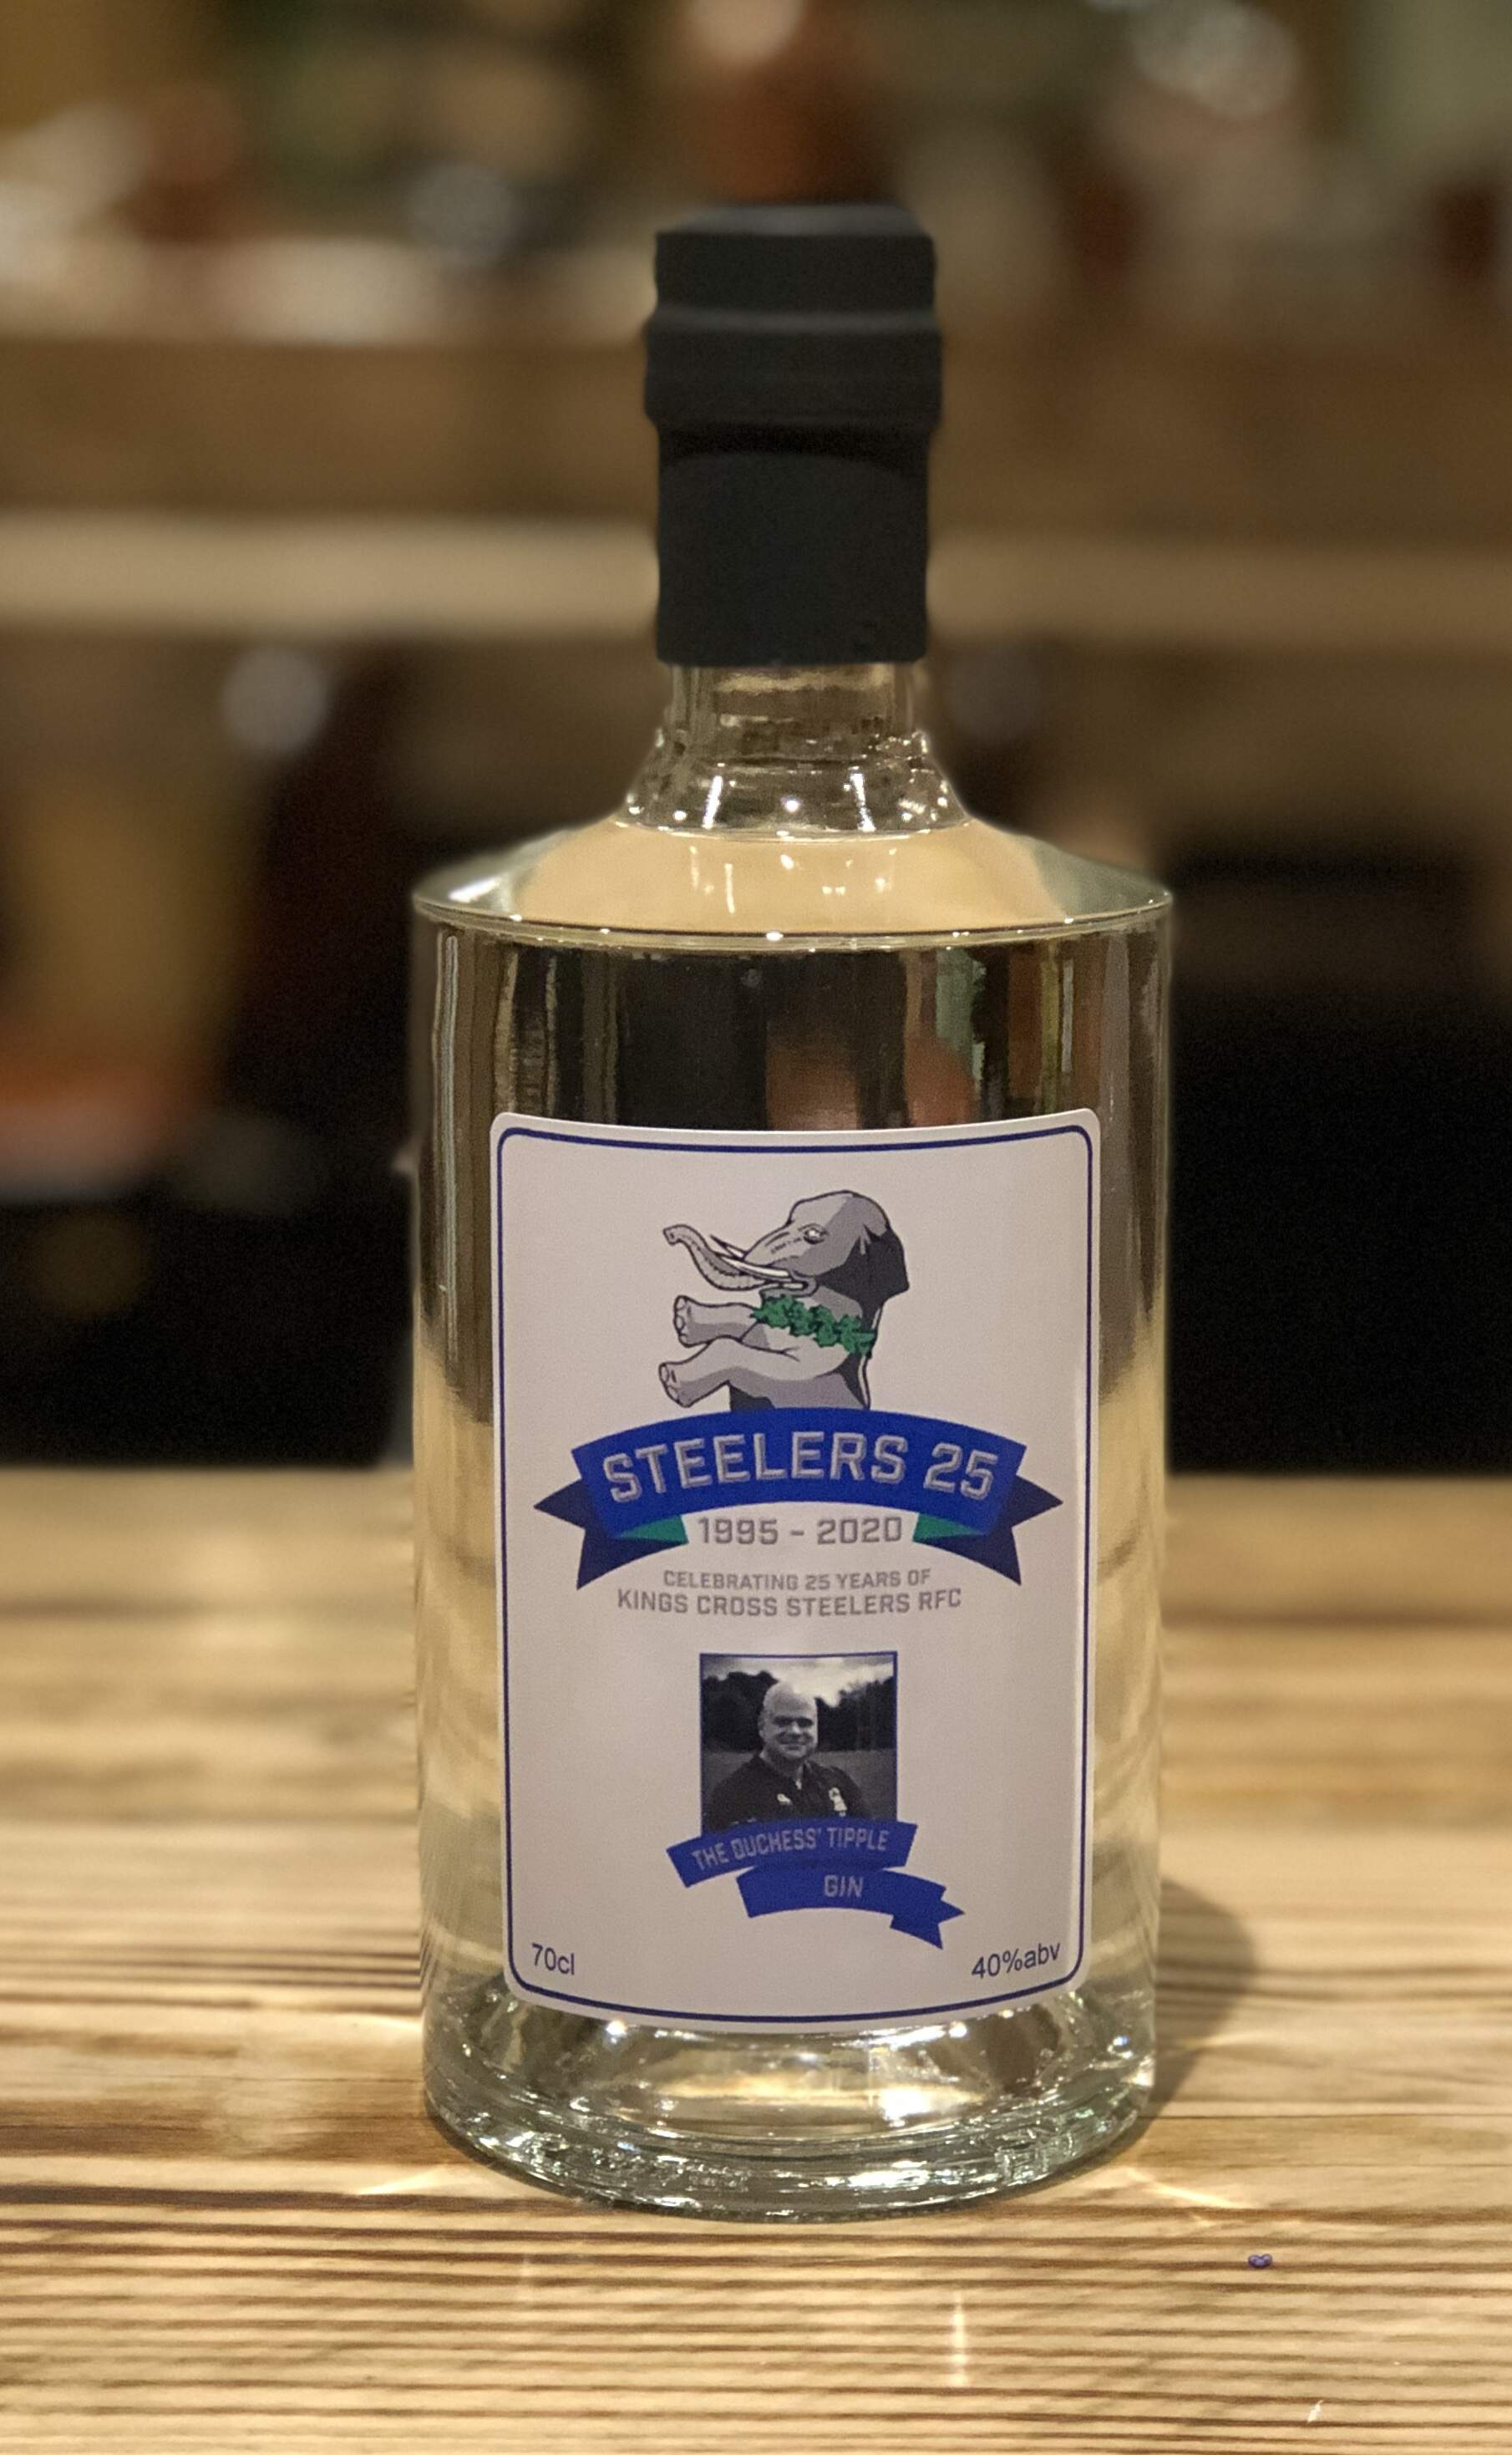 Steelers RFC Gin